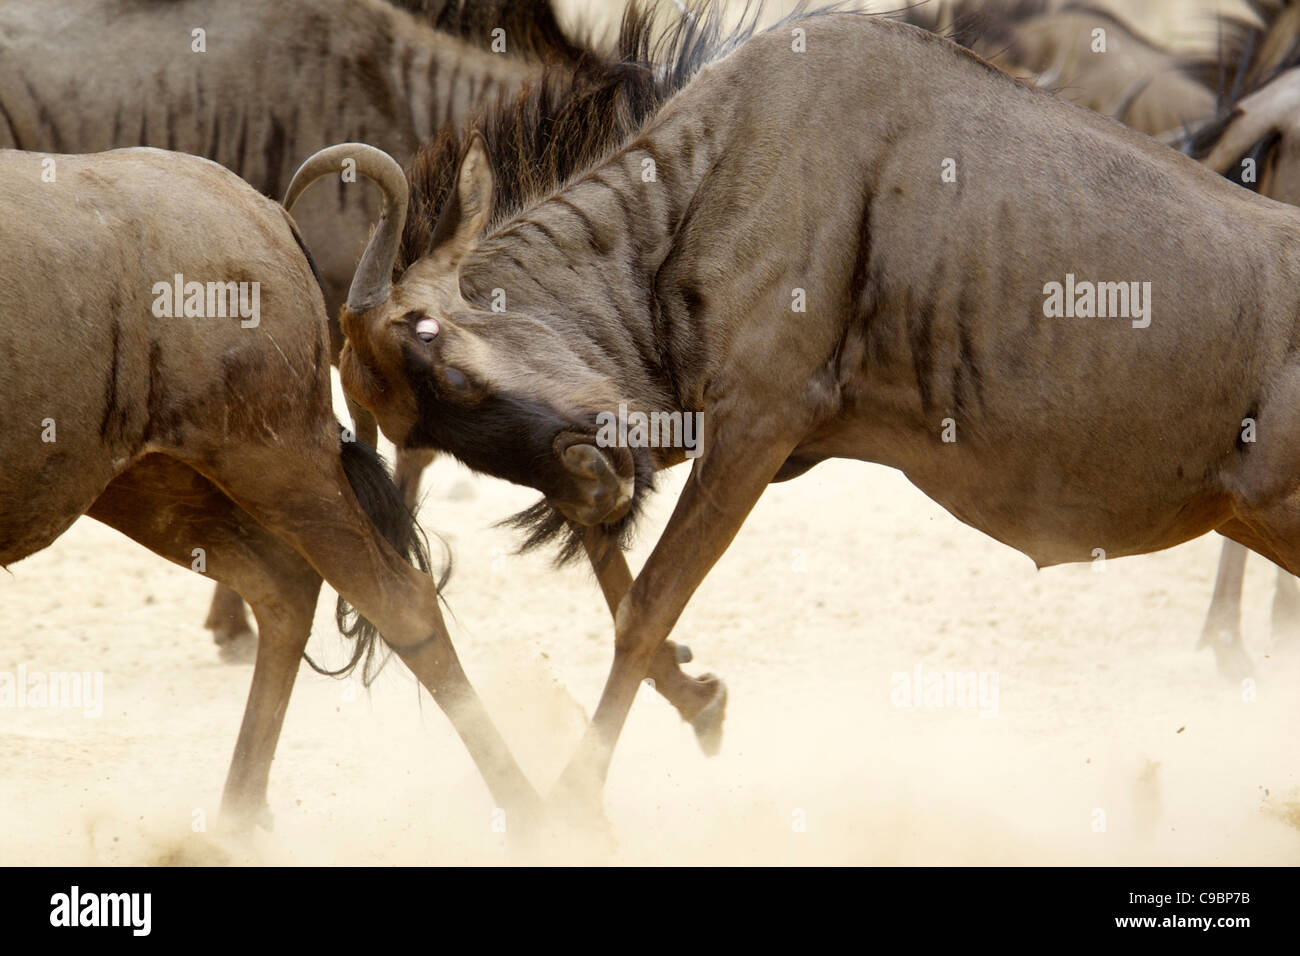 A Blue Wildebeest head butting another, Kgalagadi Transfrontier Park, Northern Cape Province, South Africa - Stock Image